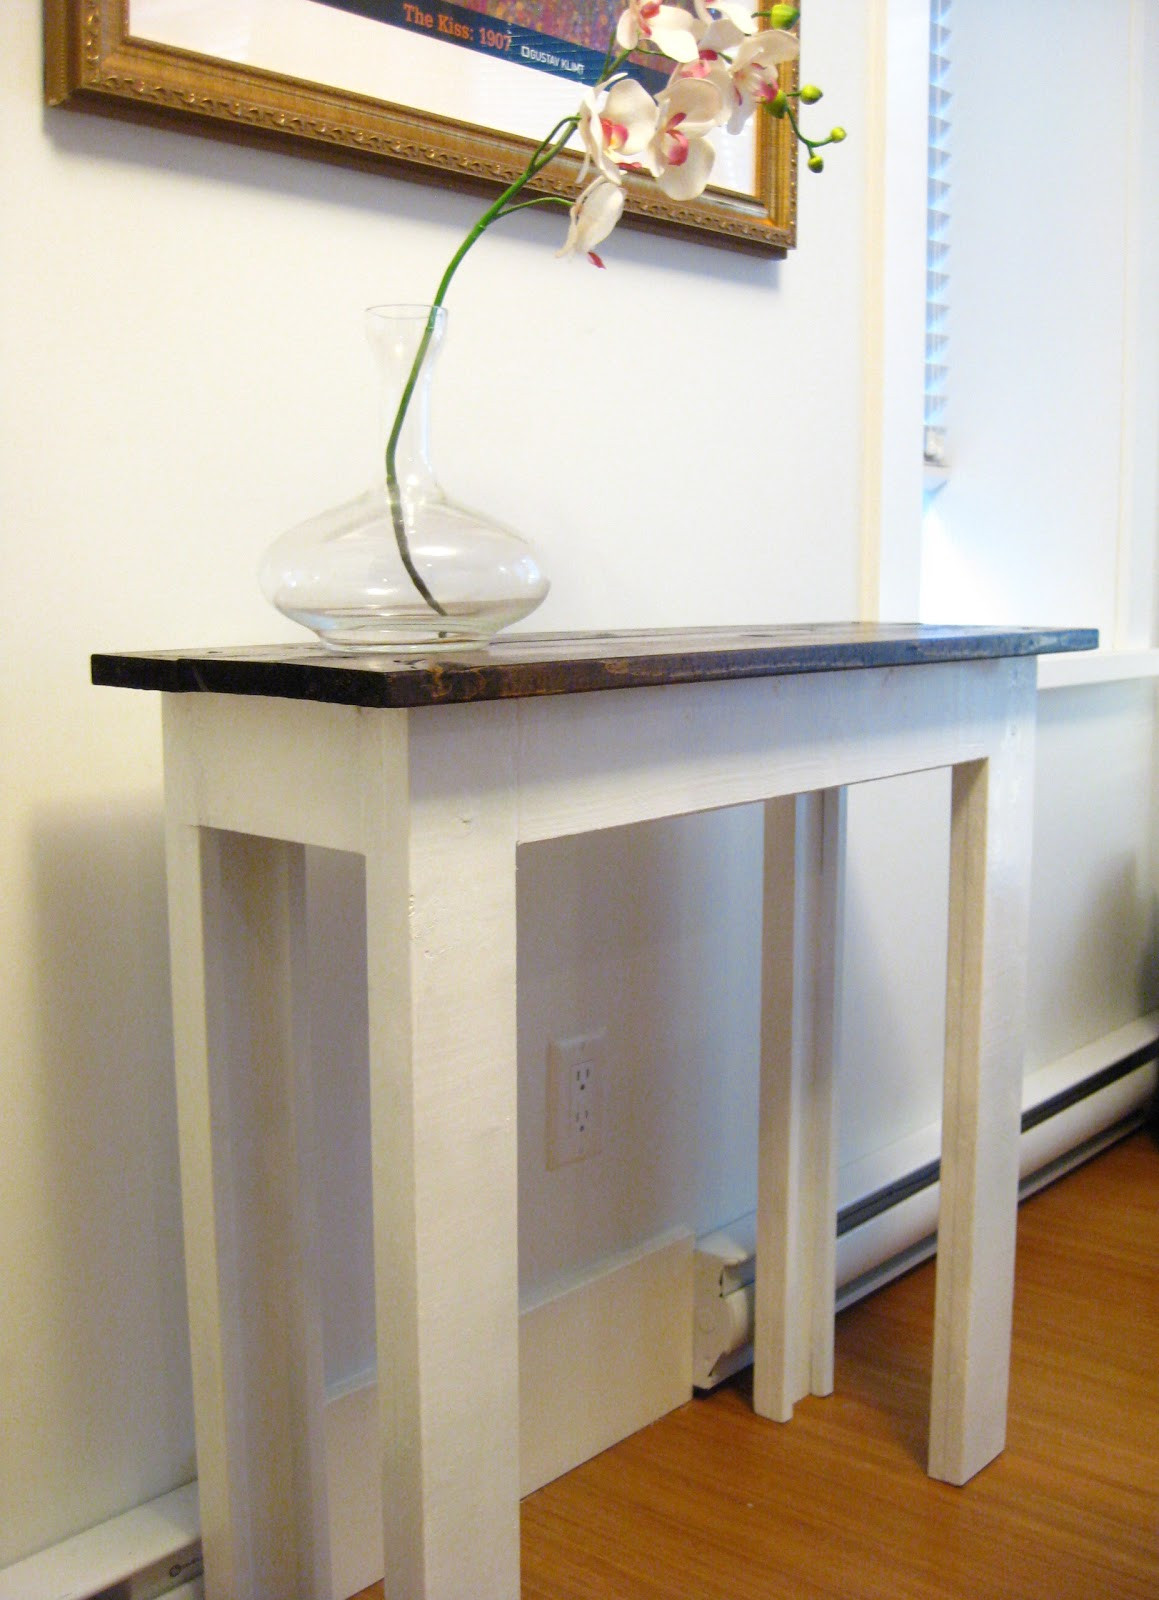 Best ideas about Console Table DIY . Save or Pin Life Designed DIY Console Table Now.